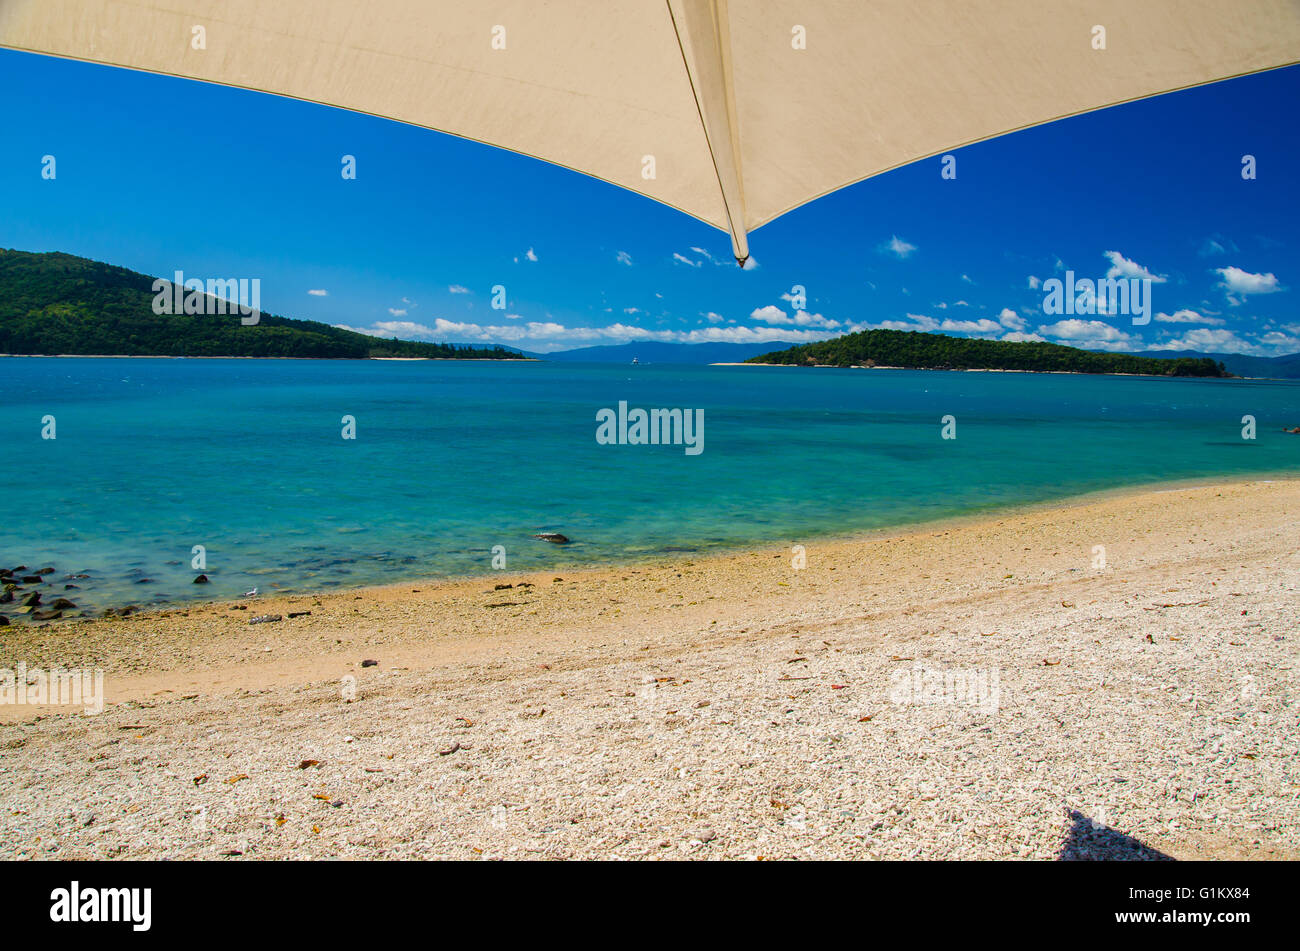 Holiday on Daydream Island. - Stock Image